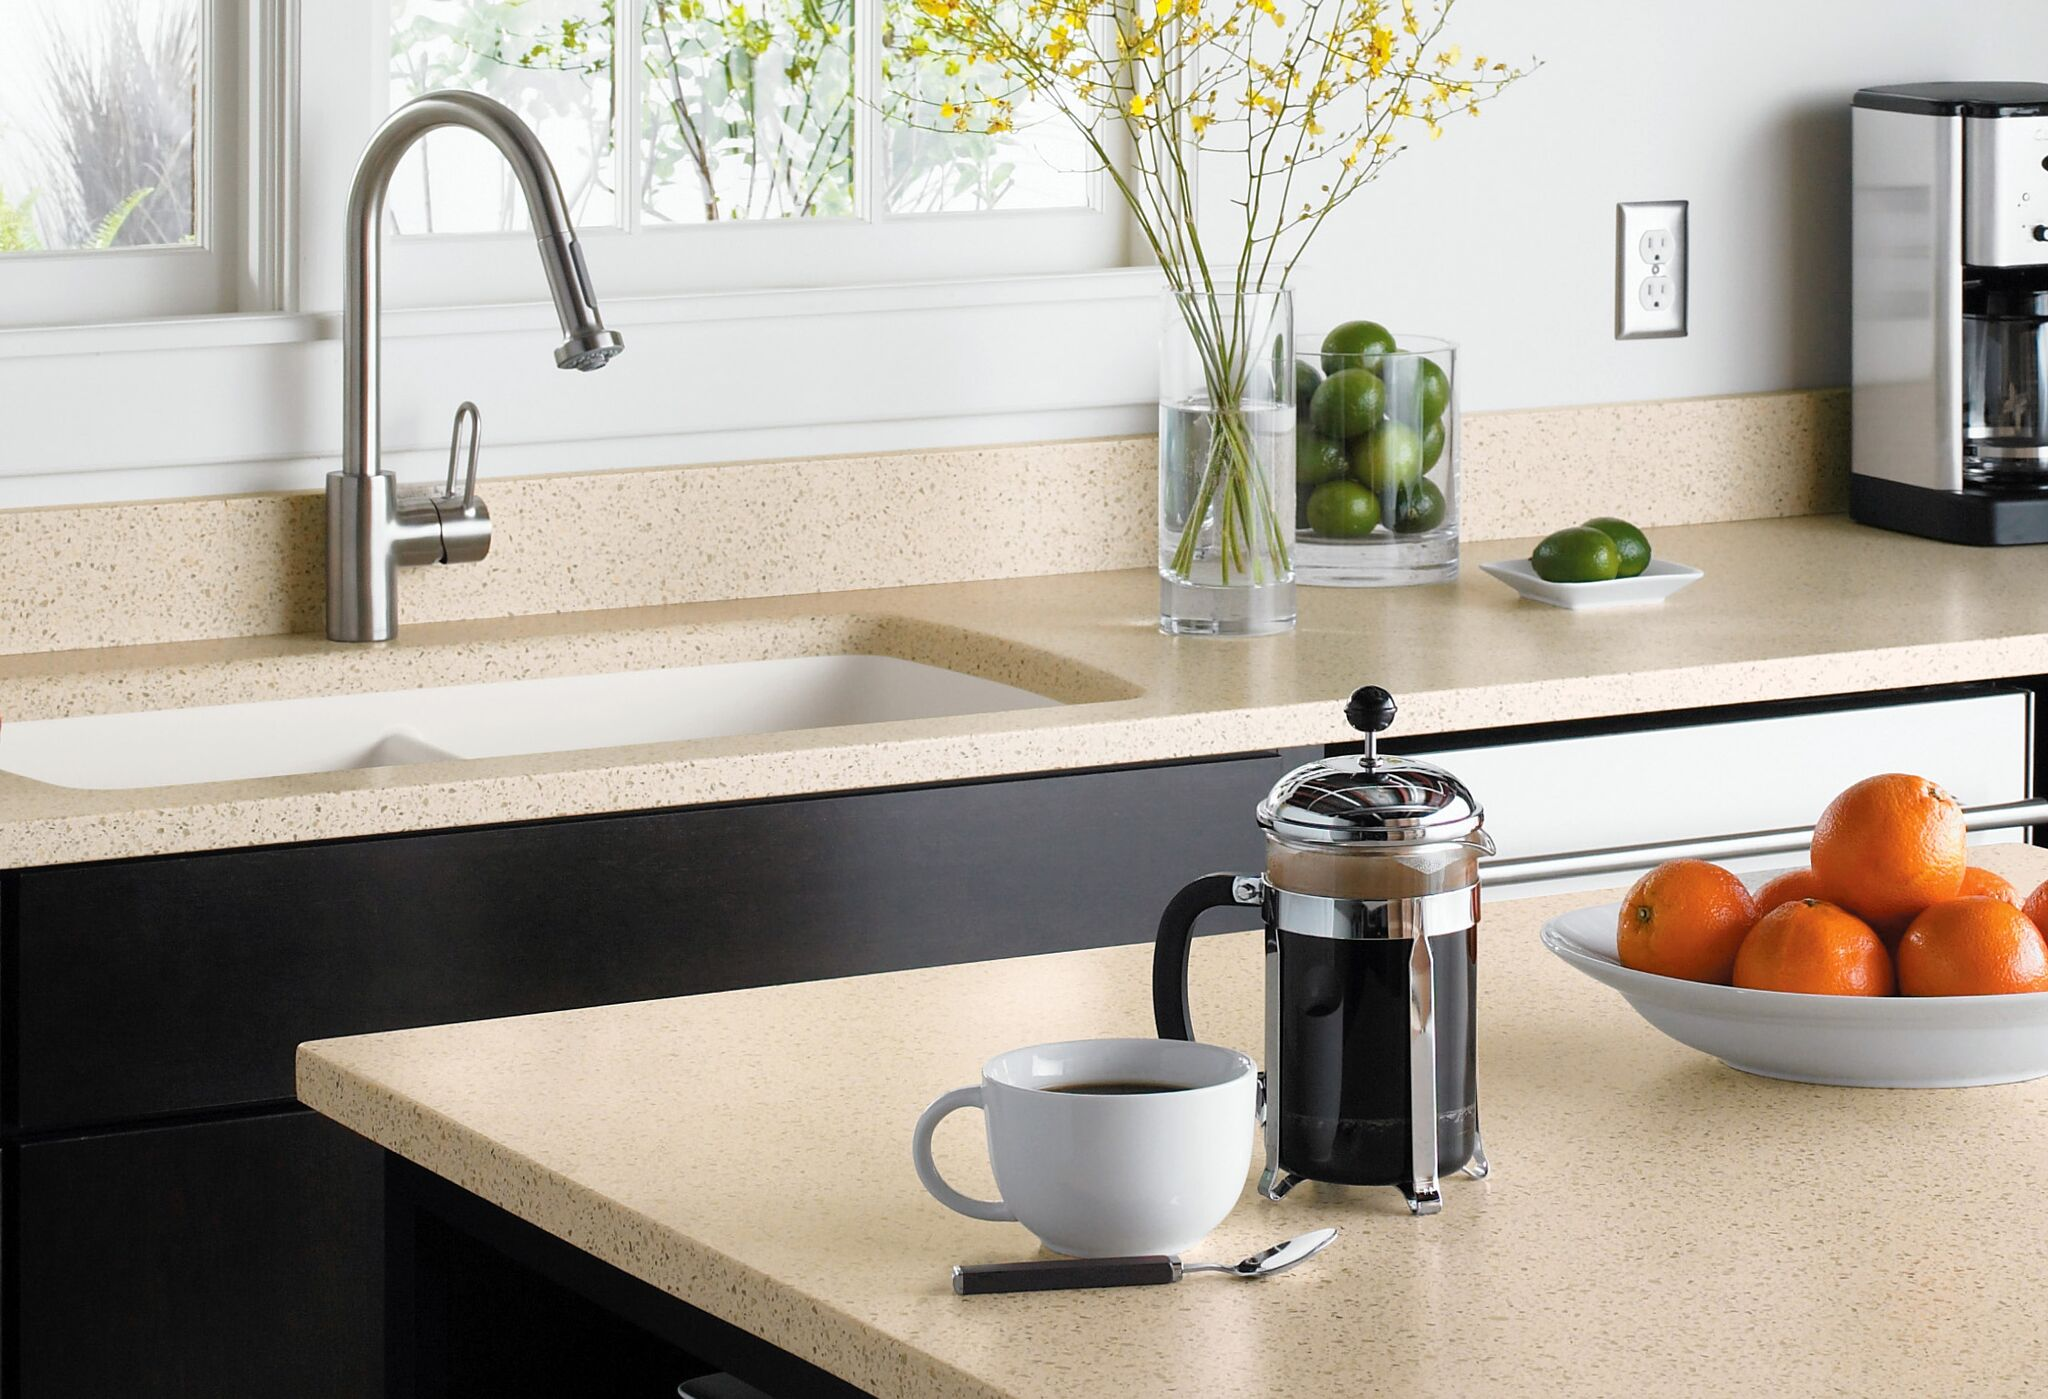 Best Place To Buy Countertops New Diy Countertop Source A Great Option For Diy